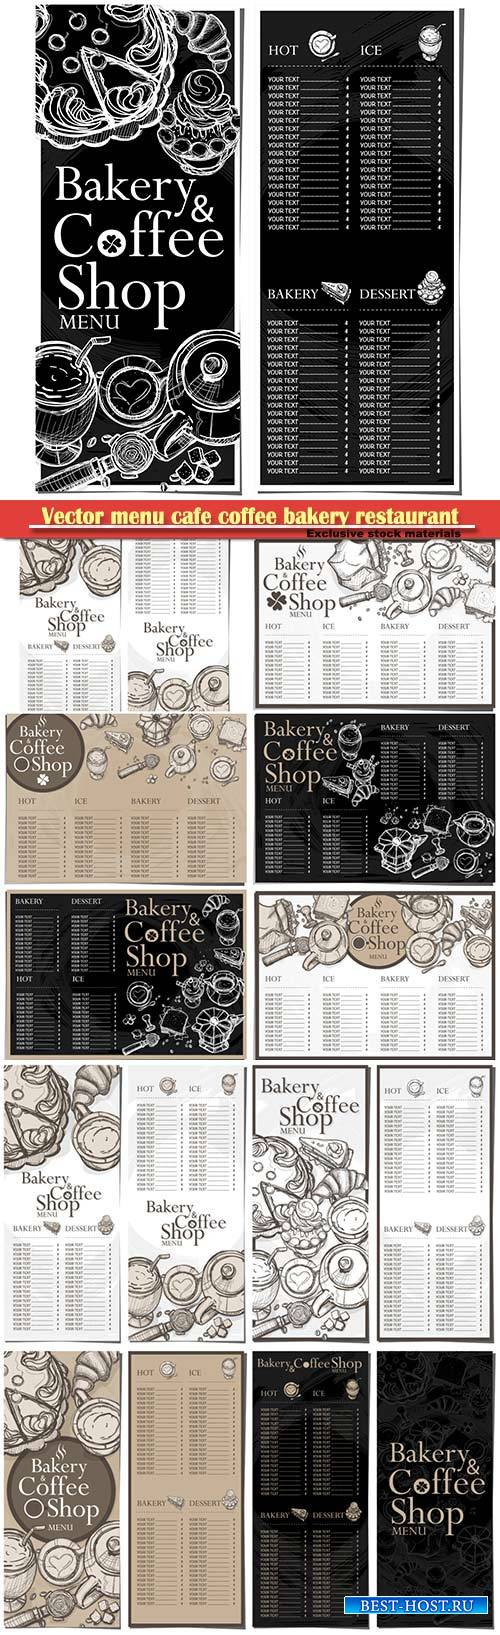 Vector menu cafe coffee bakery restaurant template design hand drawing